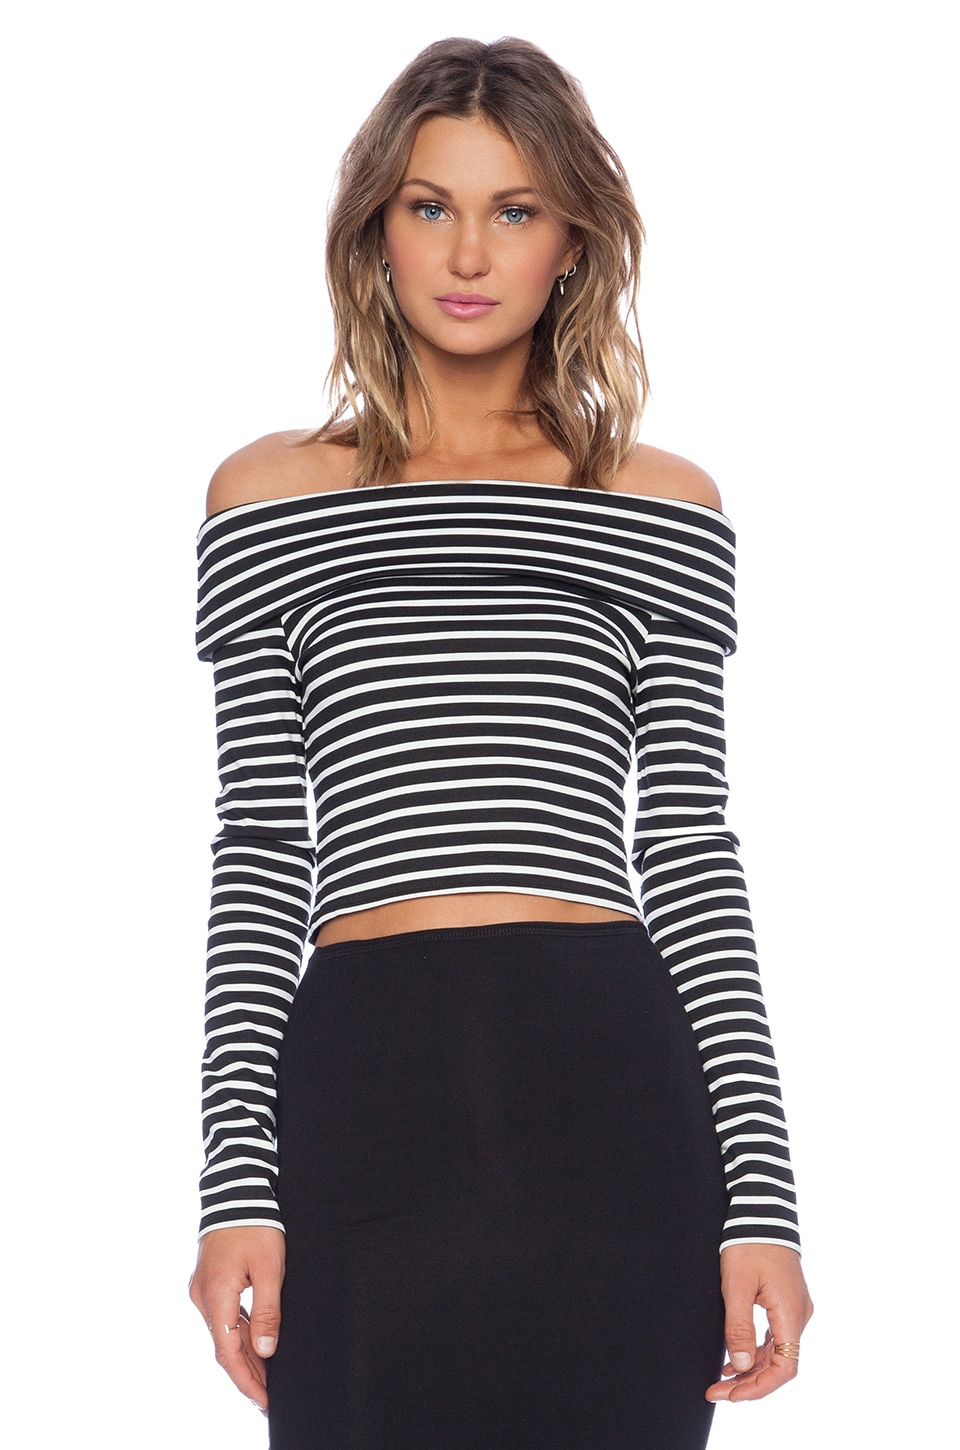 Backstage Karolina Top in Black Stripe